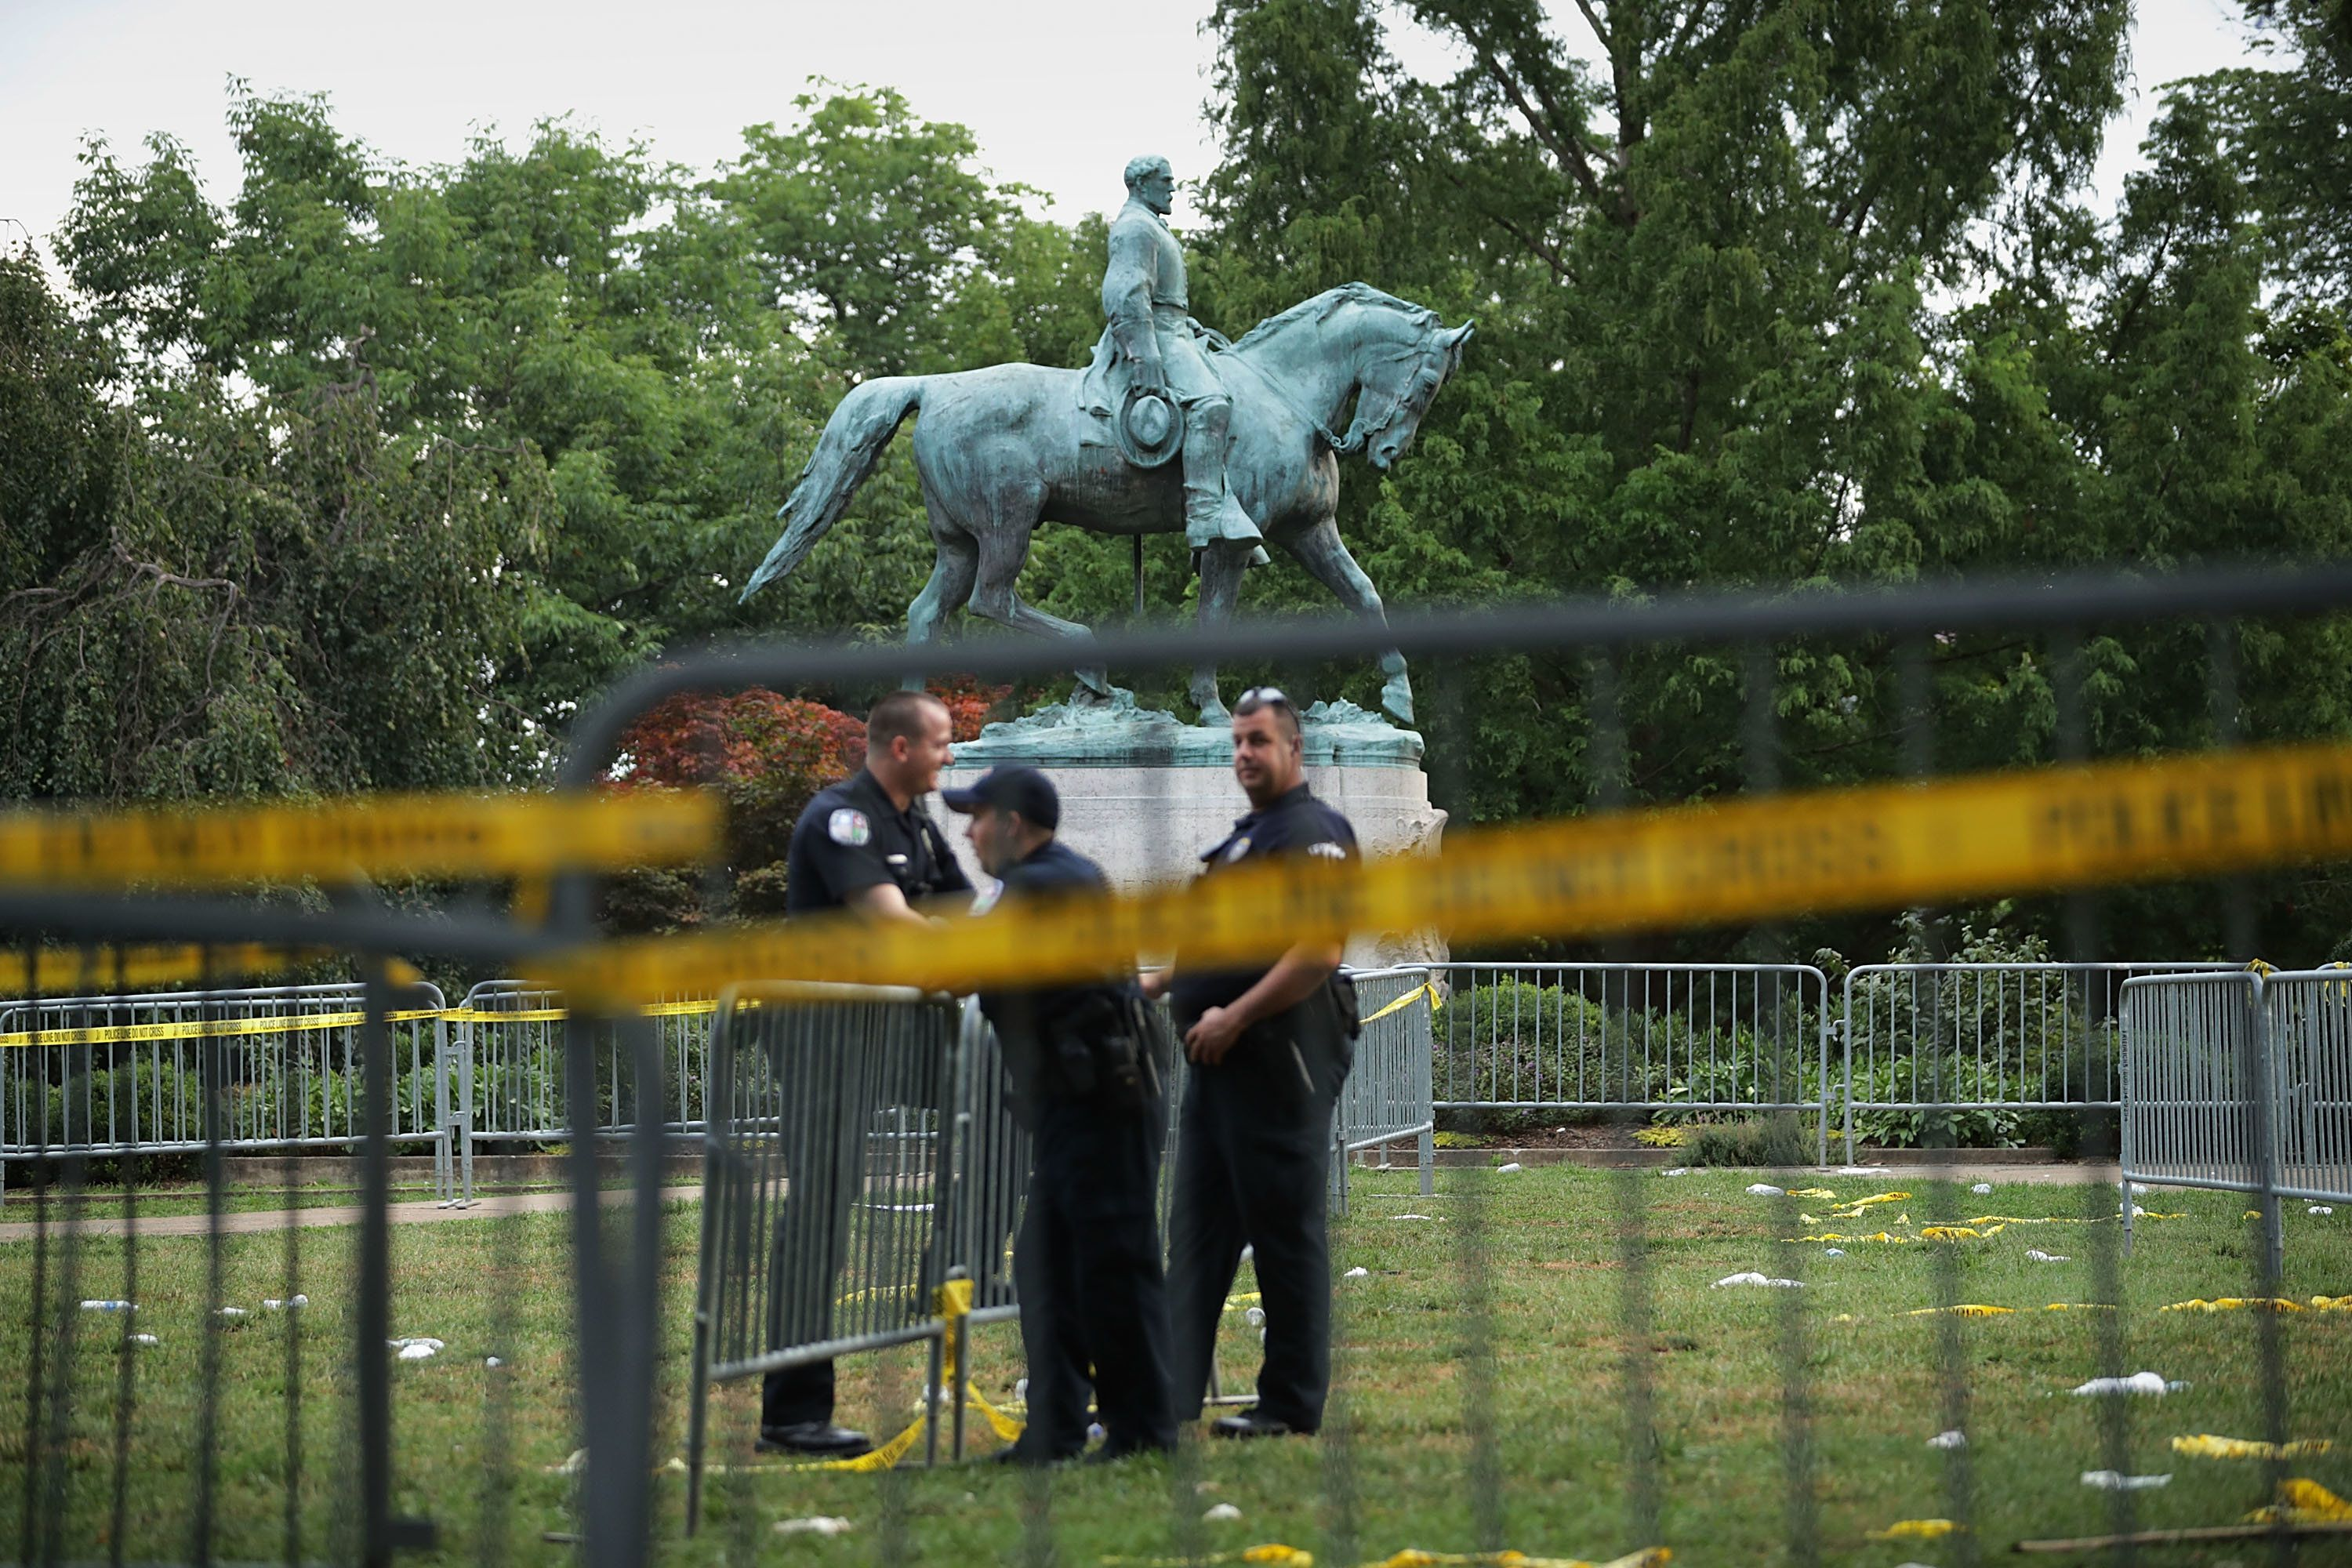 CHARLOTTESVILLE, VA - AUGUST 13:  Police stand watch near the statue of Confederate Gen. Robert E. Lee in the center of Emancipation Park the day after the Unite the Right rally devolved into violence August 13, 2017 in Charlottesville, Virginia. The Charlottesville City Council voted to remove the statue and change the name of the space from Lee Park to Emancipation Park, sparking protests from white nationalists, neo-Nazis, the Ku Klux Klan and members of the 'alt-right.'  (Photo by Chip Somodevilla/Getty Images)